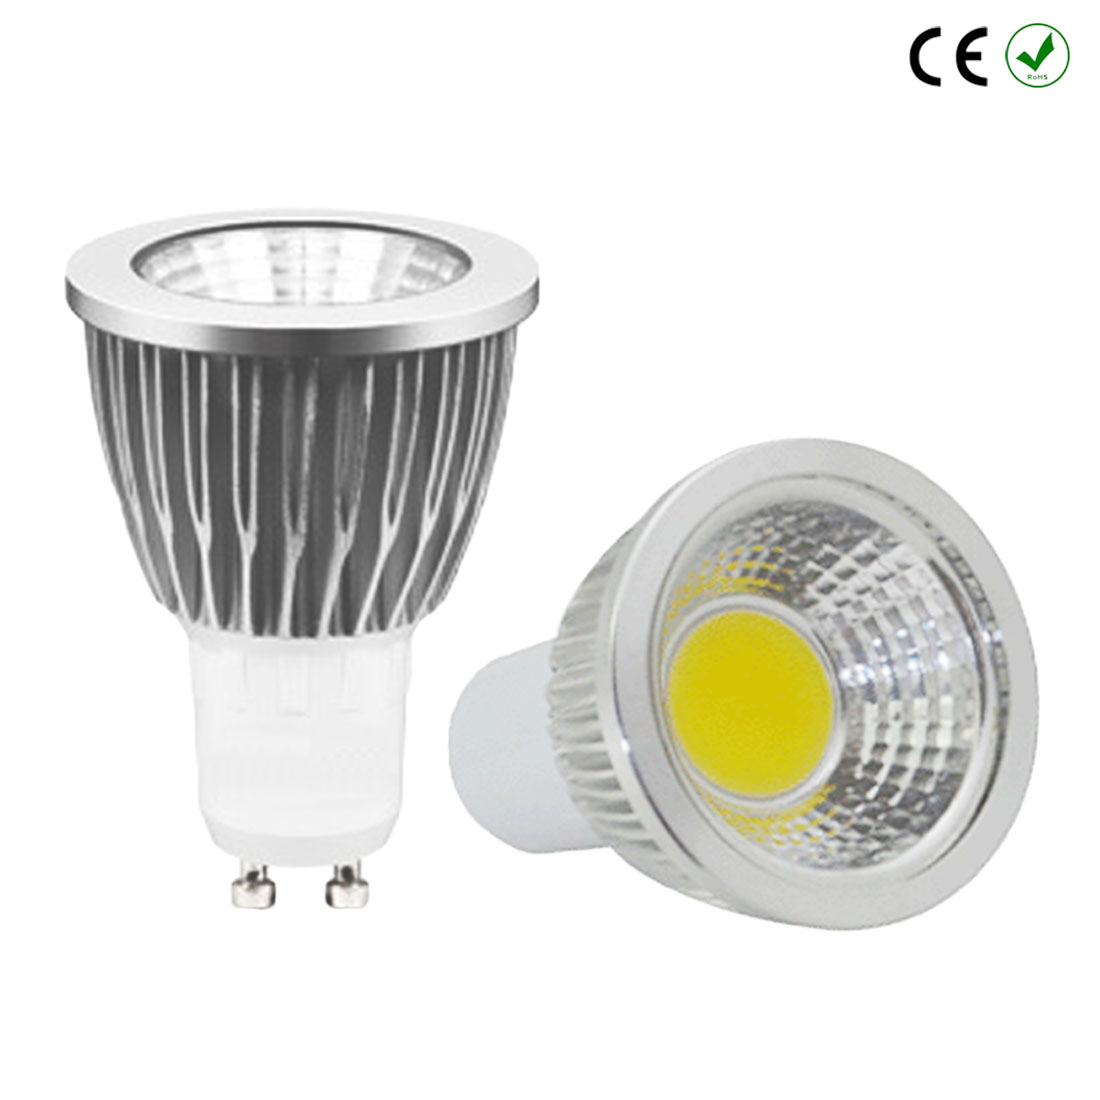 Warm White 3W 5W 7W bulb replace energy saving lamp GU10 E27 220V 110V 12V Spot Light LED Bulb Led COB MR16 2700K